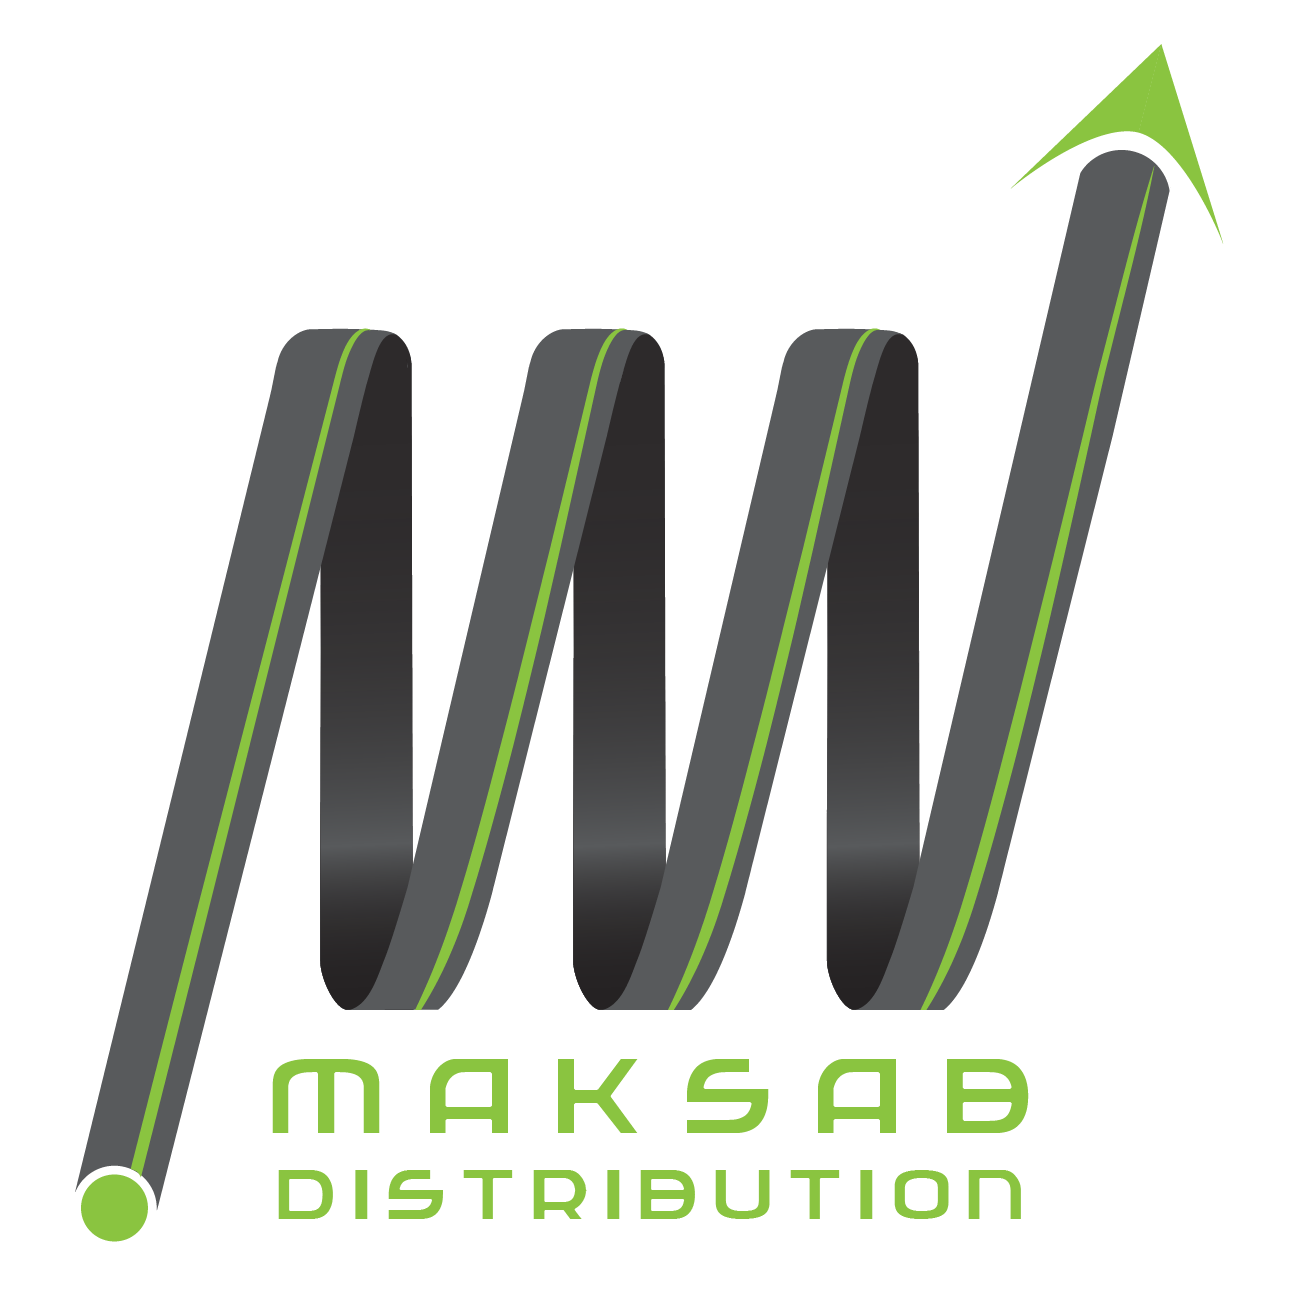 Maksab Distribution's logo